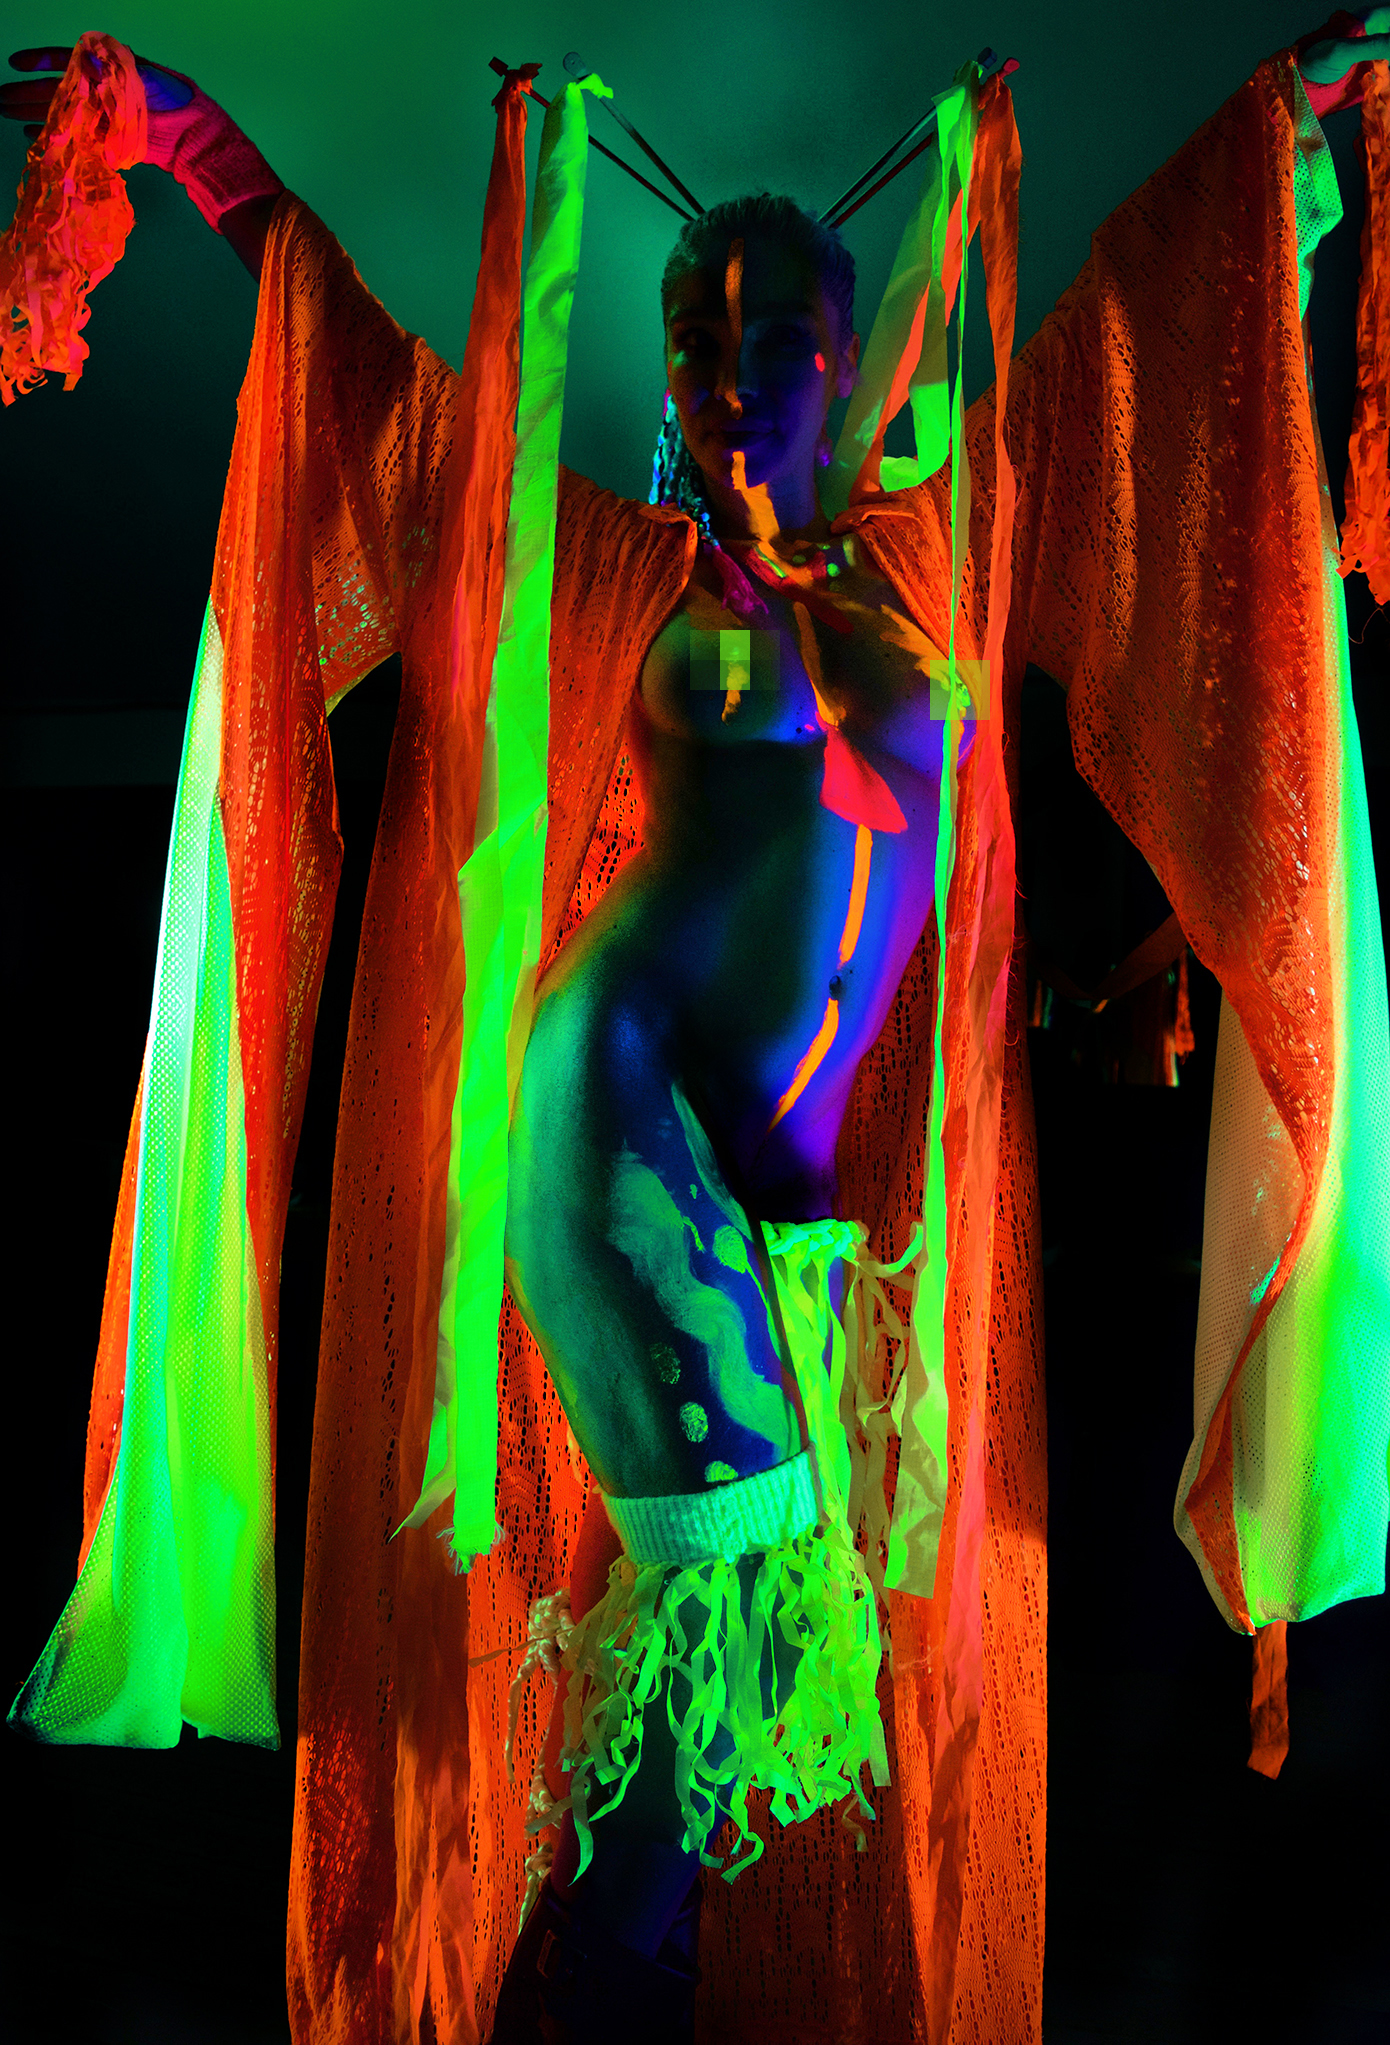 Valantina modelling for Neon Naked.